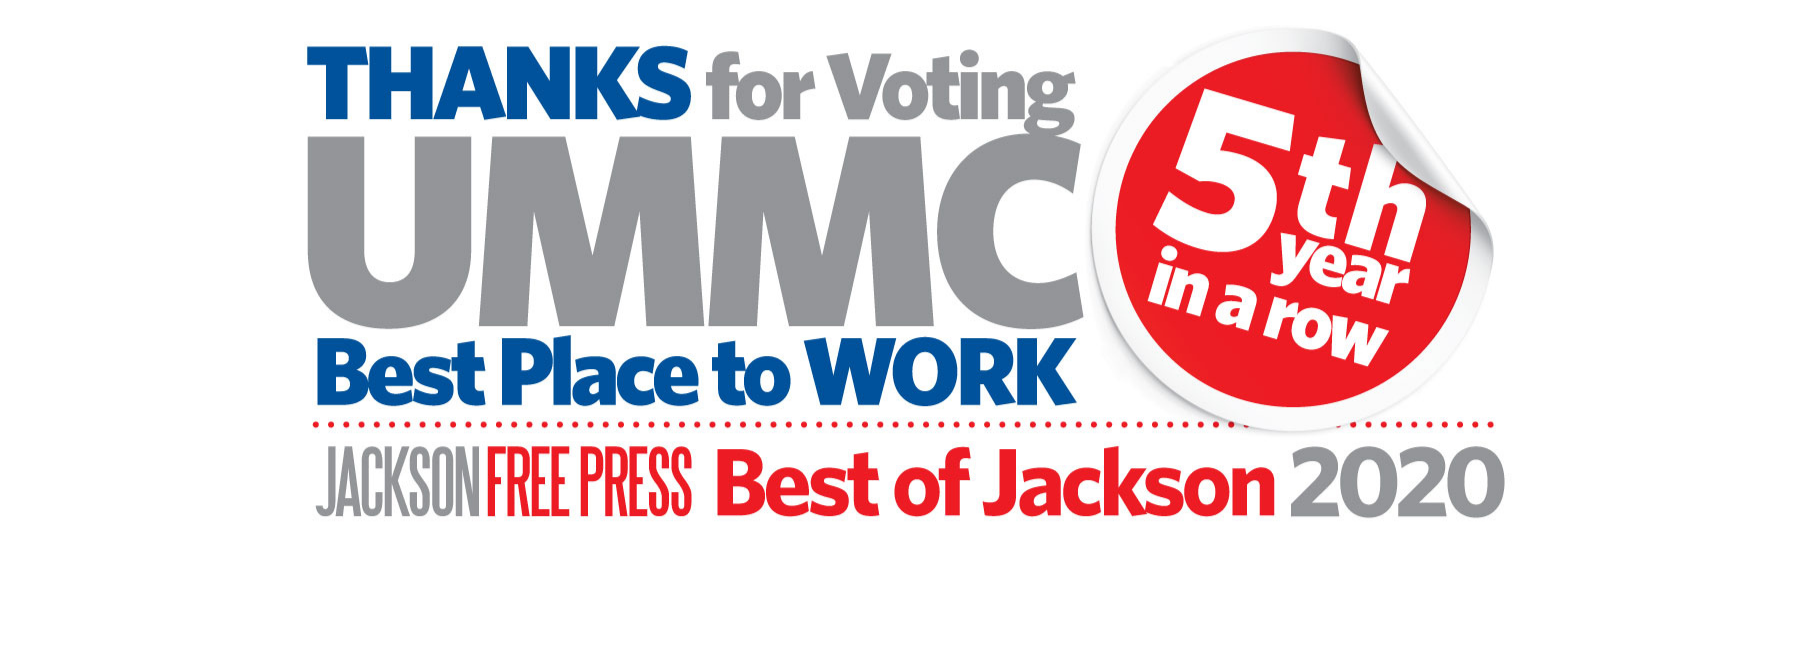 Thanks for voting UMMC best place to work 5th year in a row. Jackson Free Press. Best of Jackson 2020.